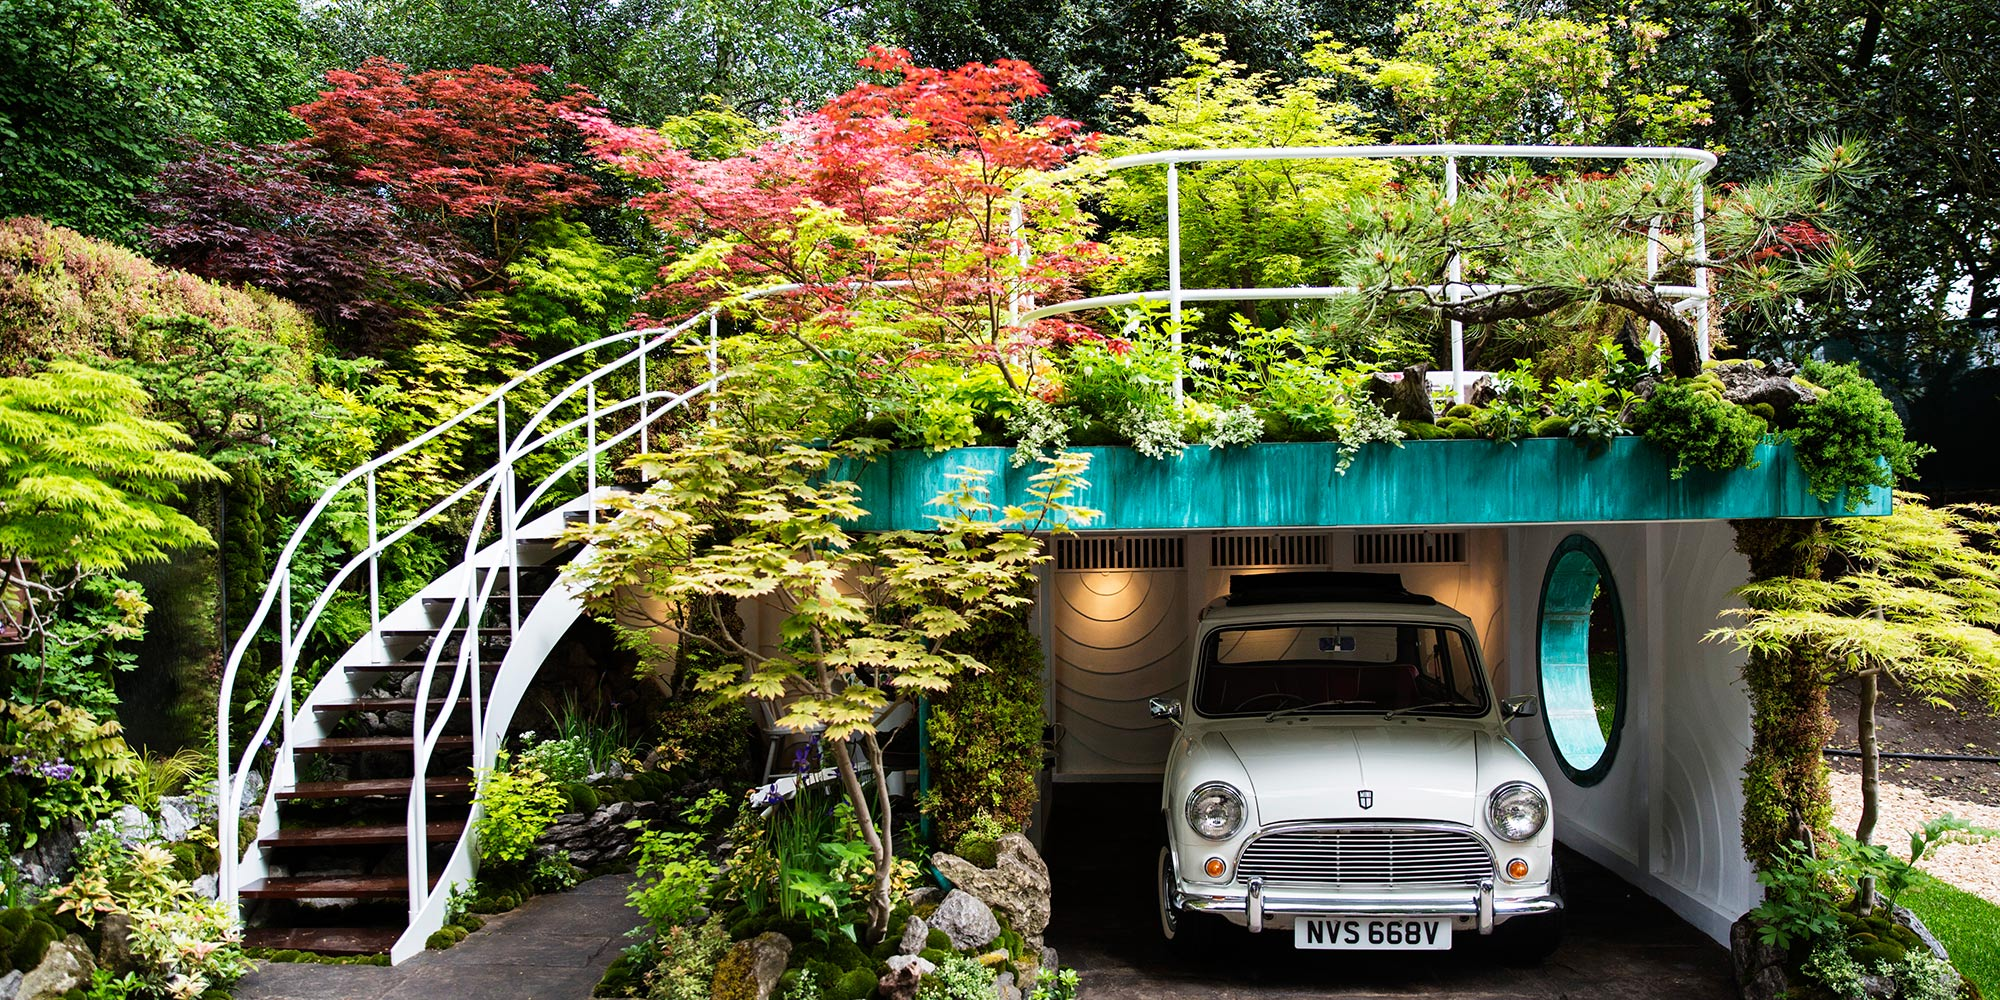 2020 Chelsea Flower Show 2 Night London Package + FREE Oyster Card